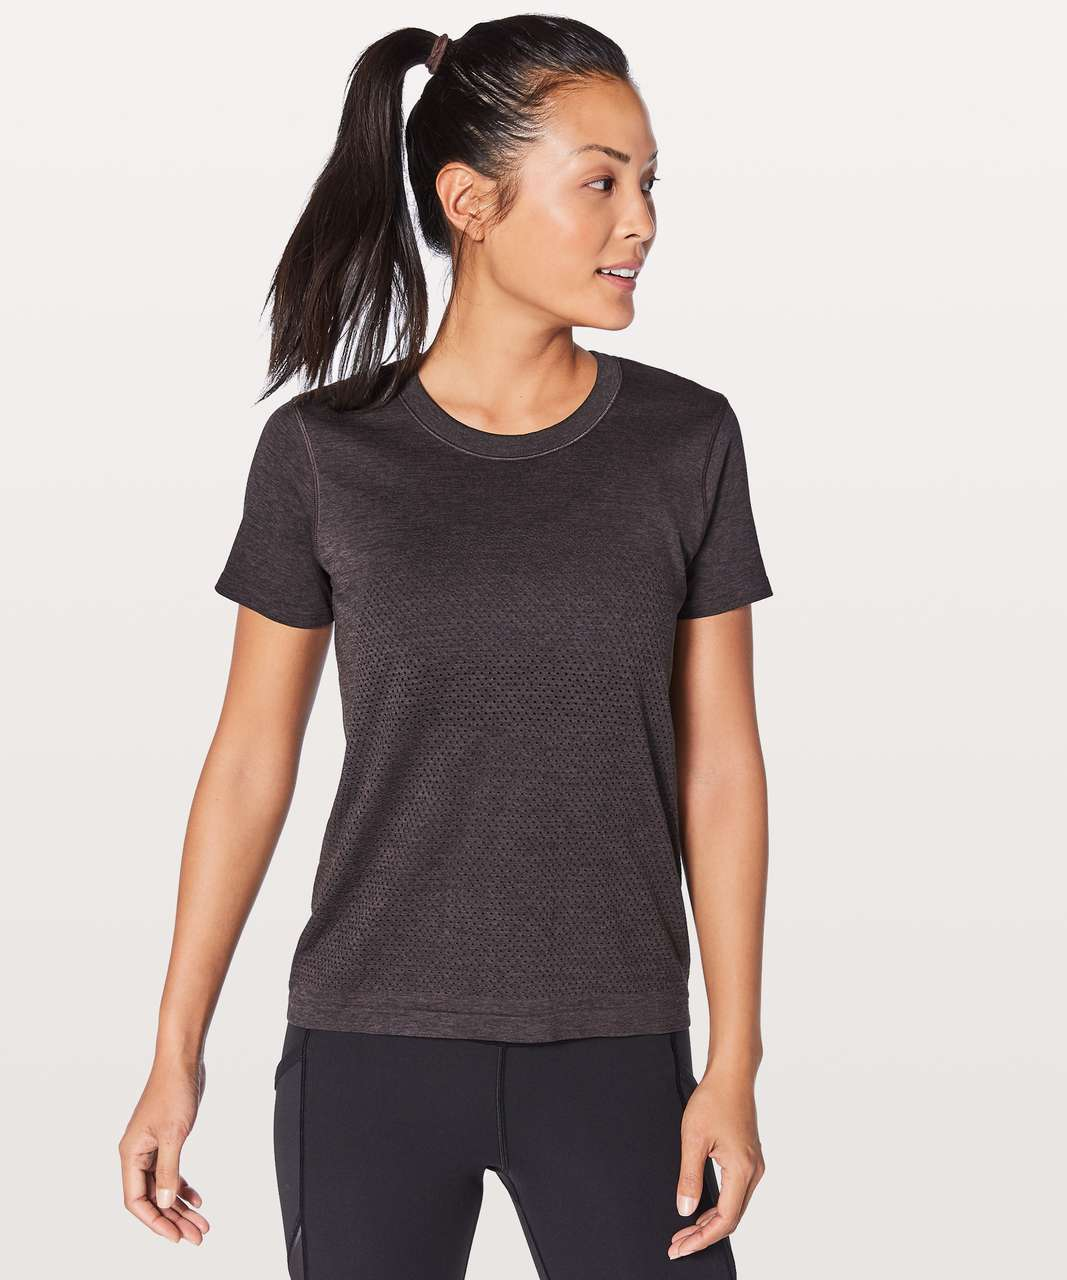 Lululemon Breeze By Short Sleeve - Black Cherry / Black